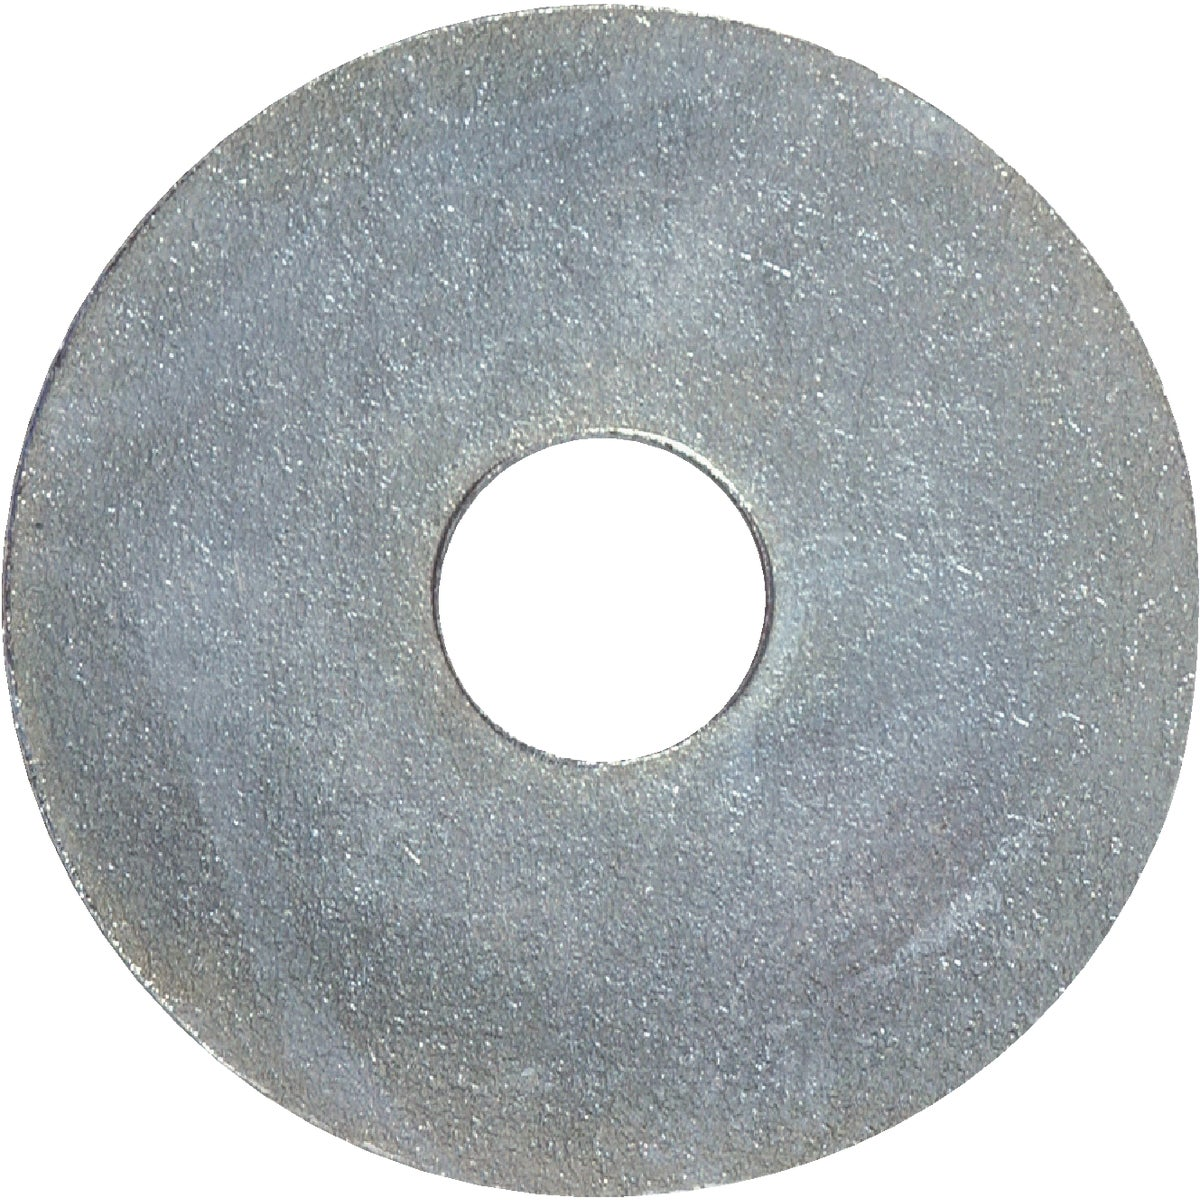 3/8X1-1/2 FENDER WASHER - 290036 by Hillman Fastener